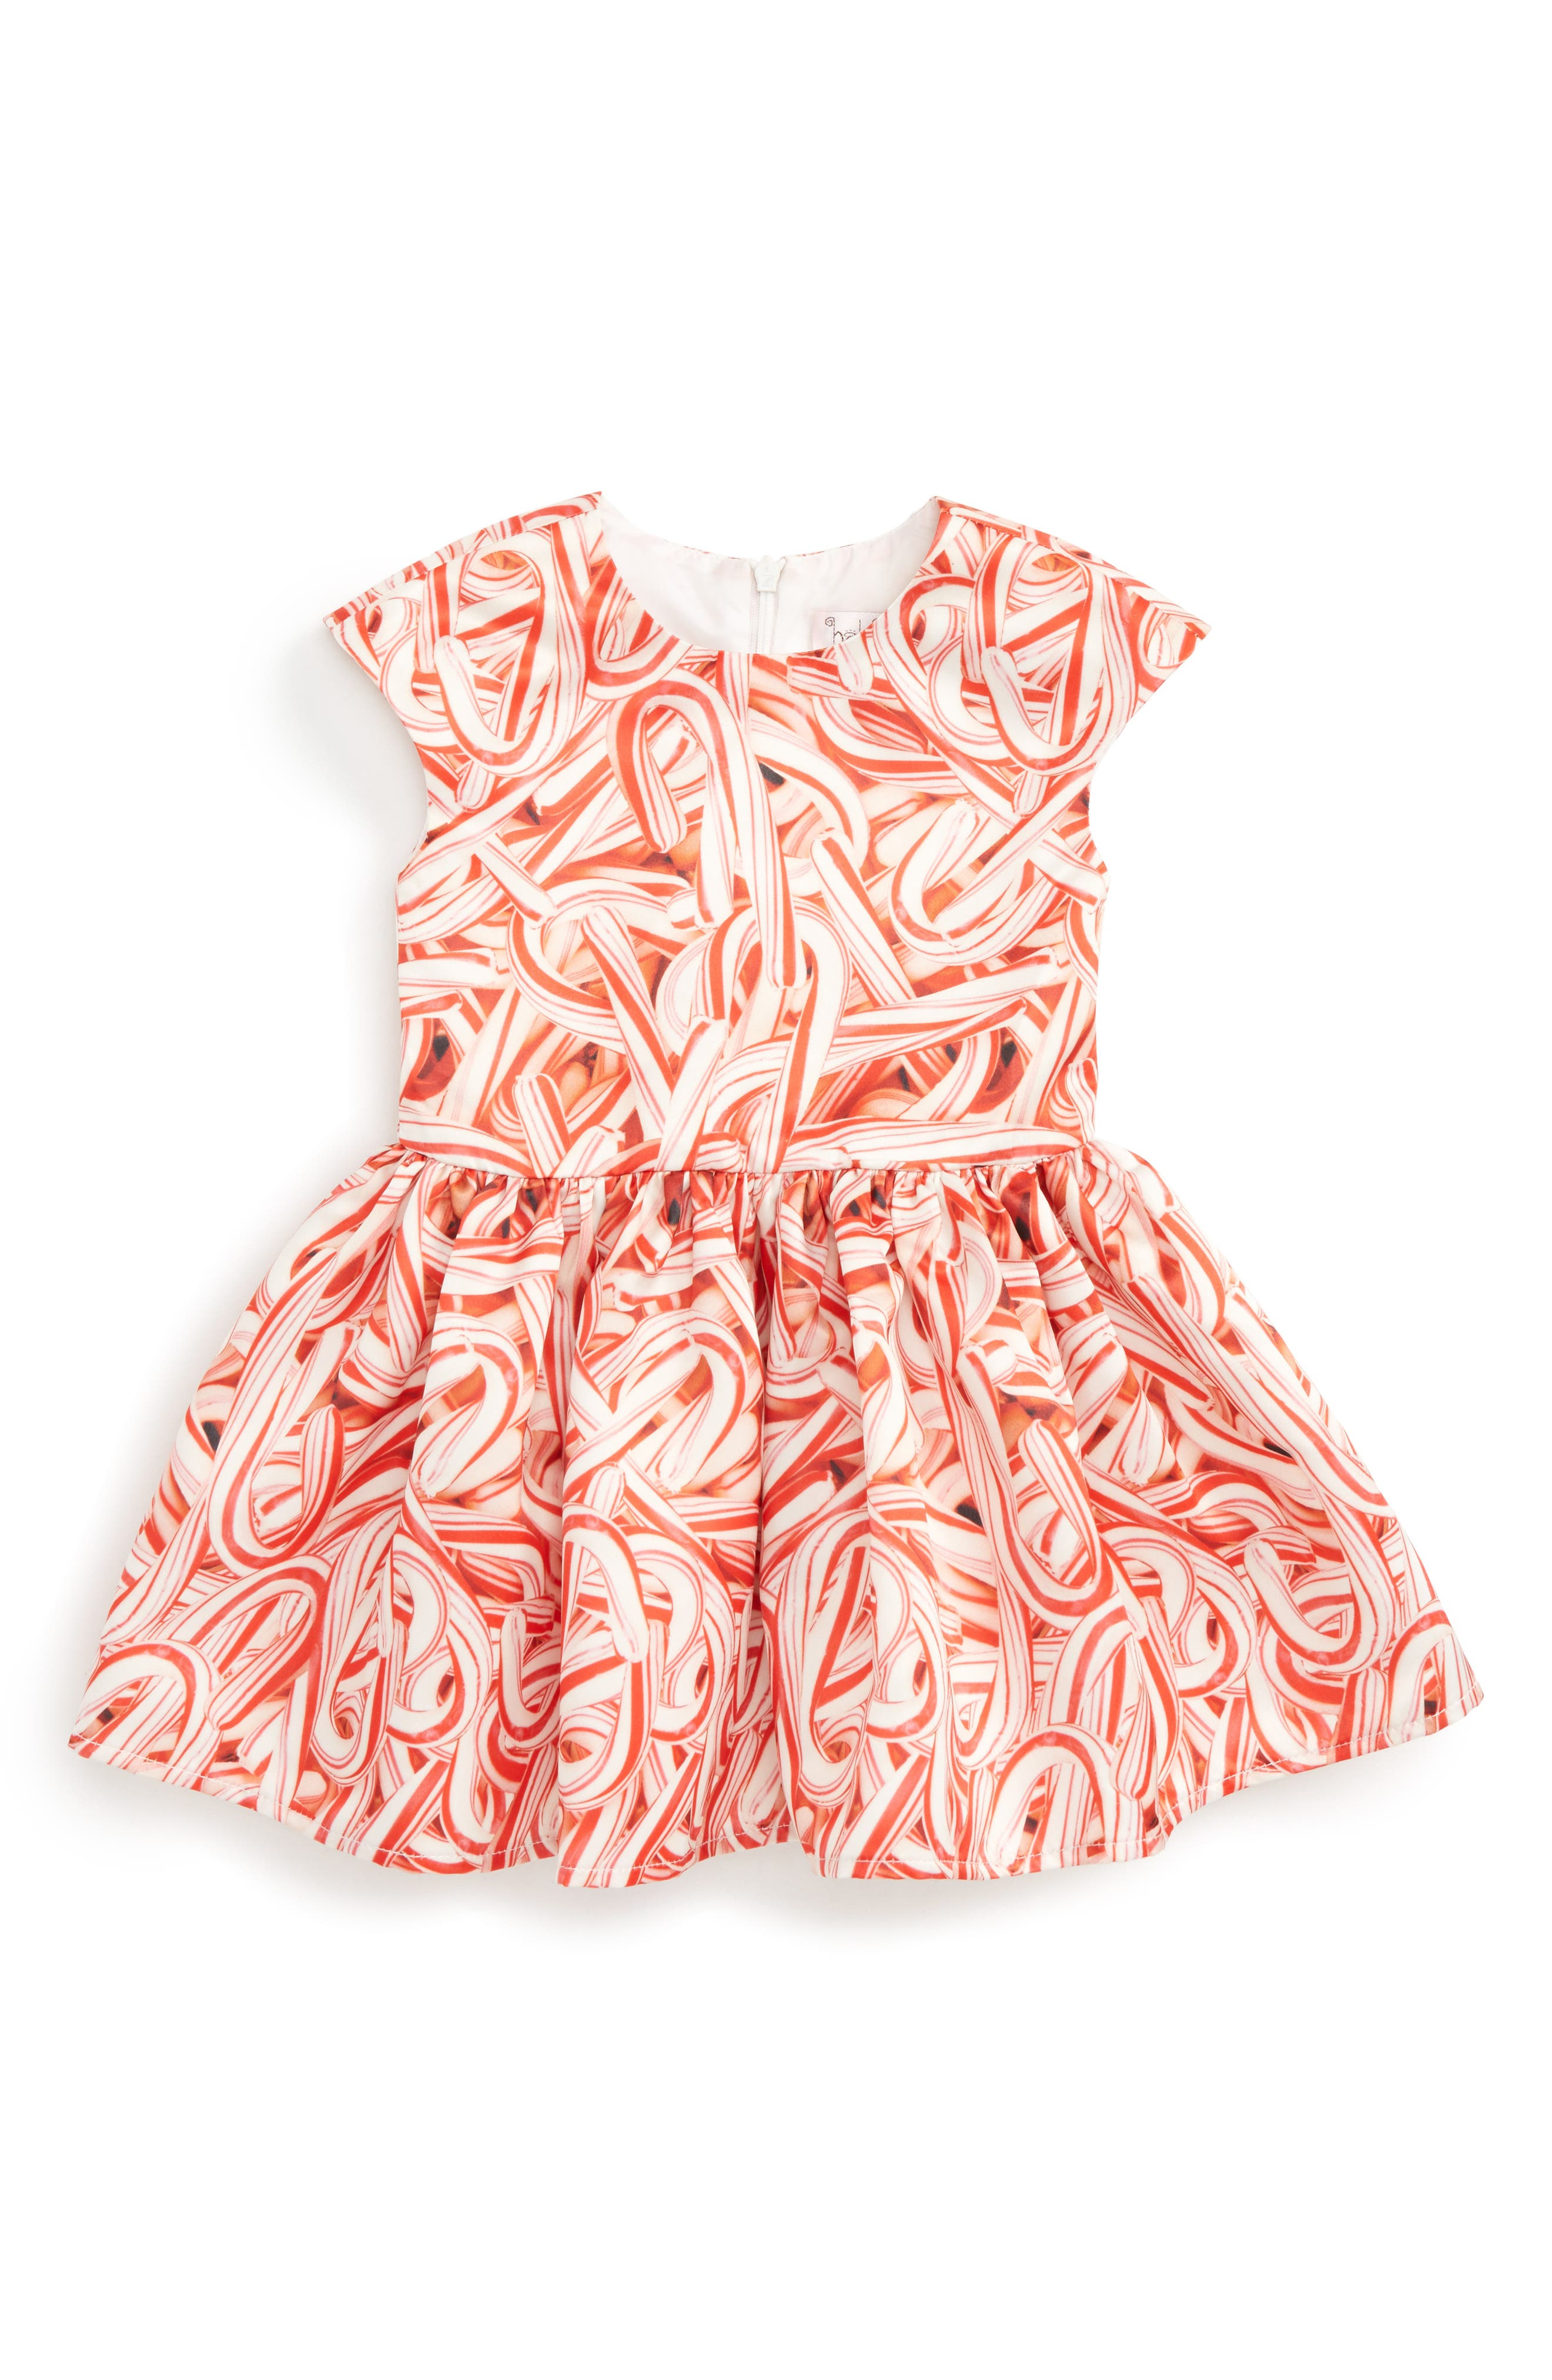 Candy Cane Print Dress,                         Main,                         color, Red